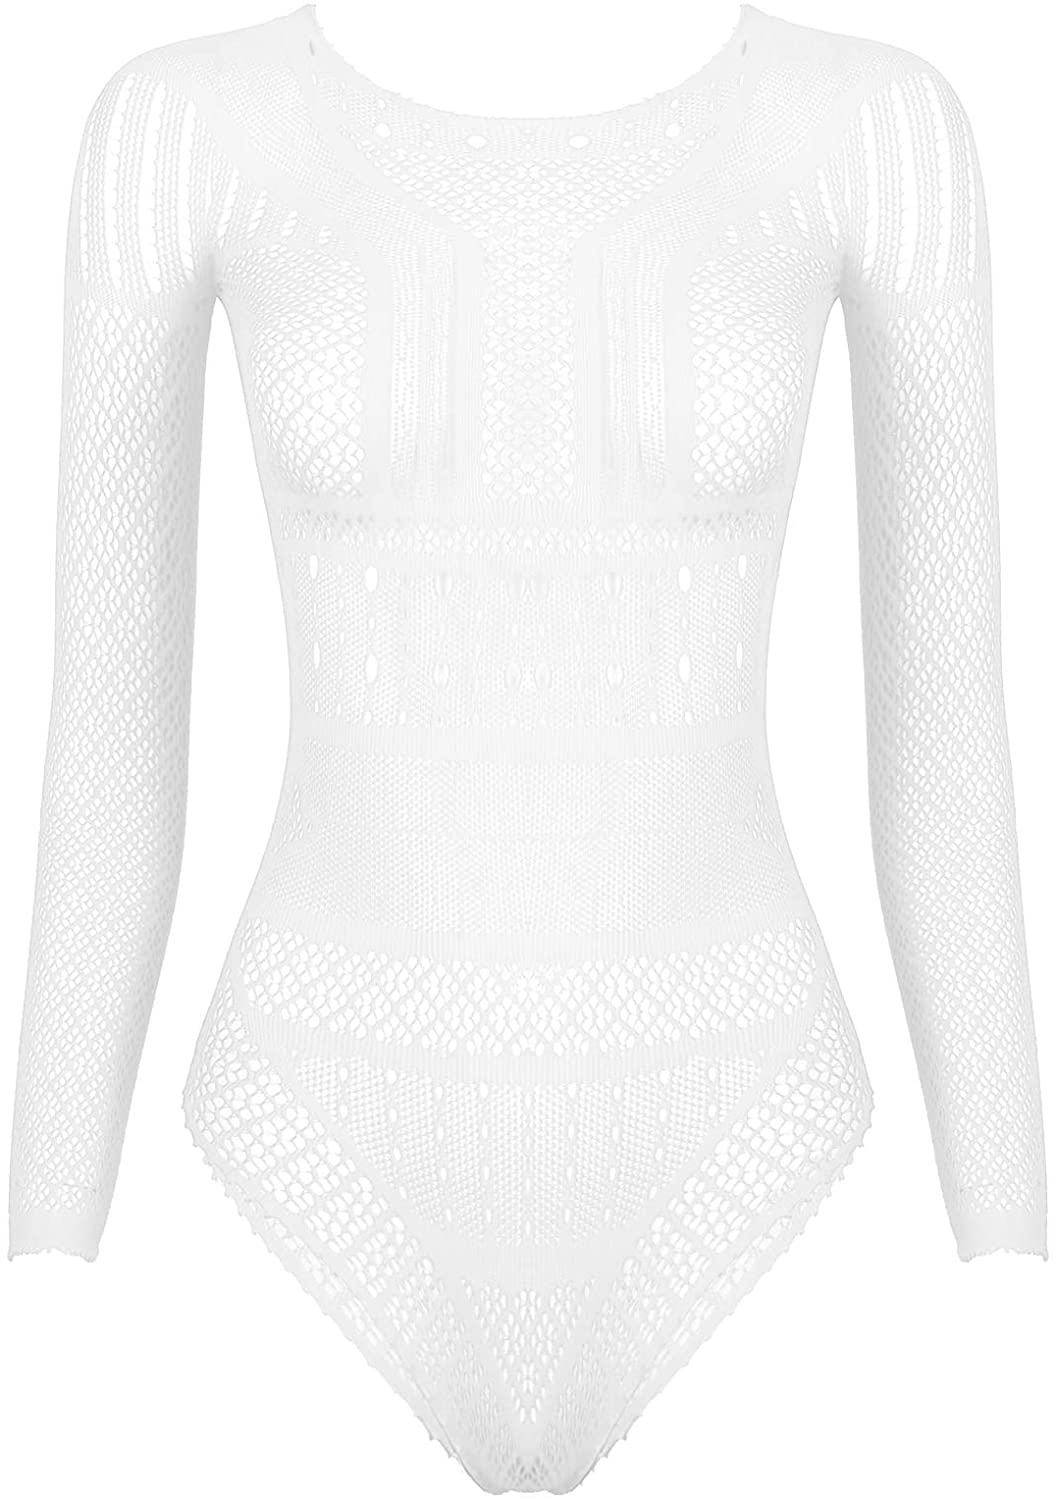 Agoky Womens One-Piece Sheer Fishent Hollow Out Leotard Bodysuit See Through High Cut Thong Romper Nightwear